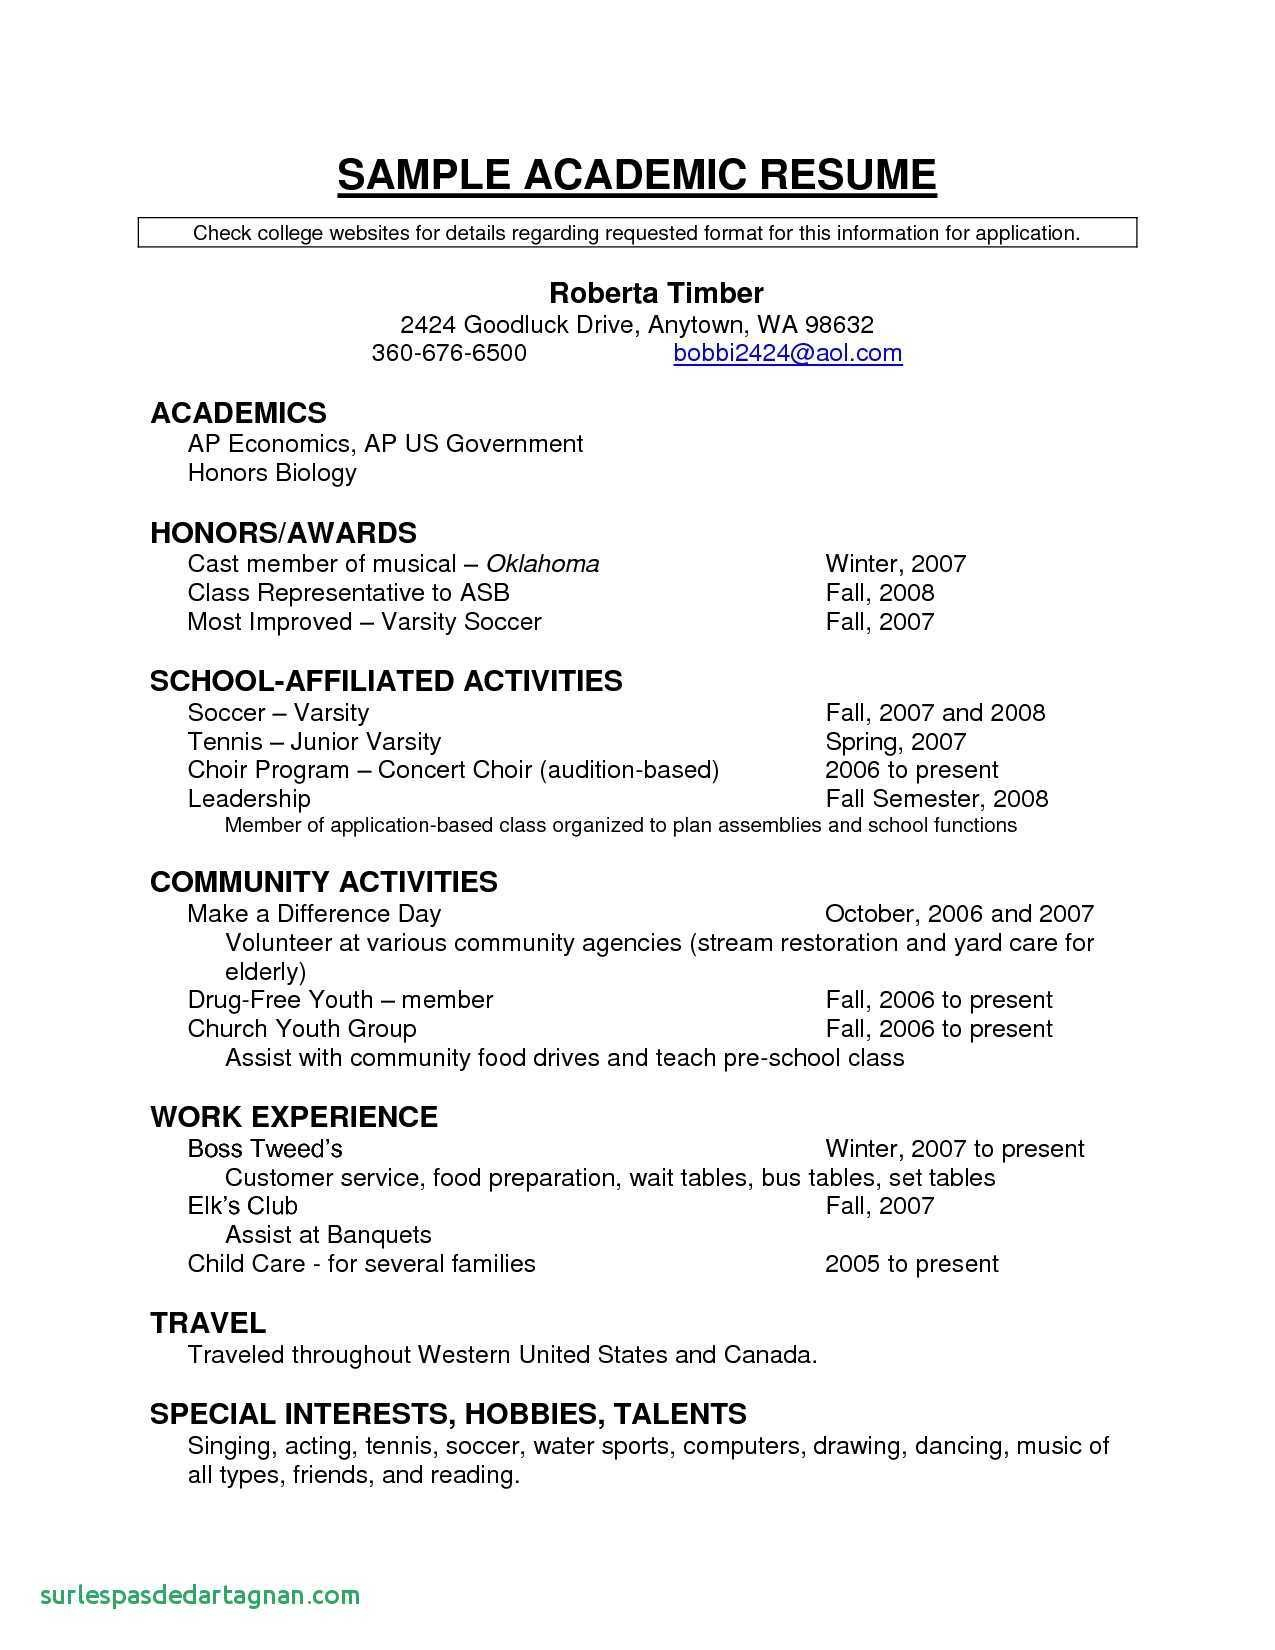 soccer resume template for college example-Information 11-c